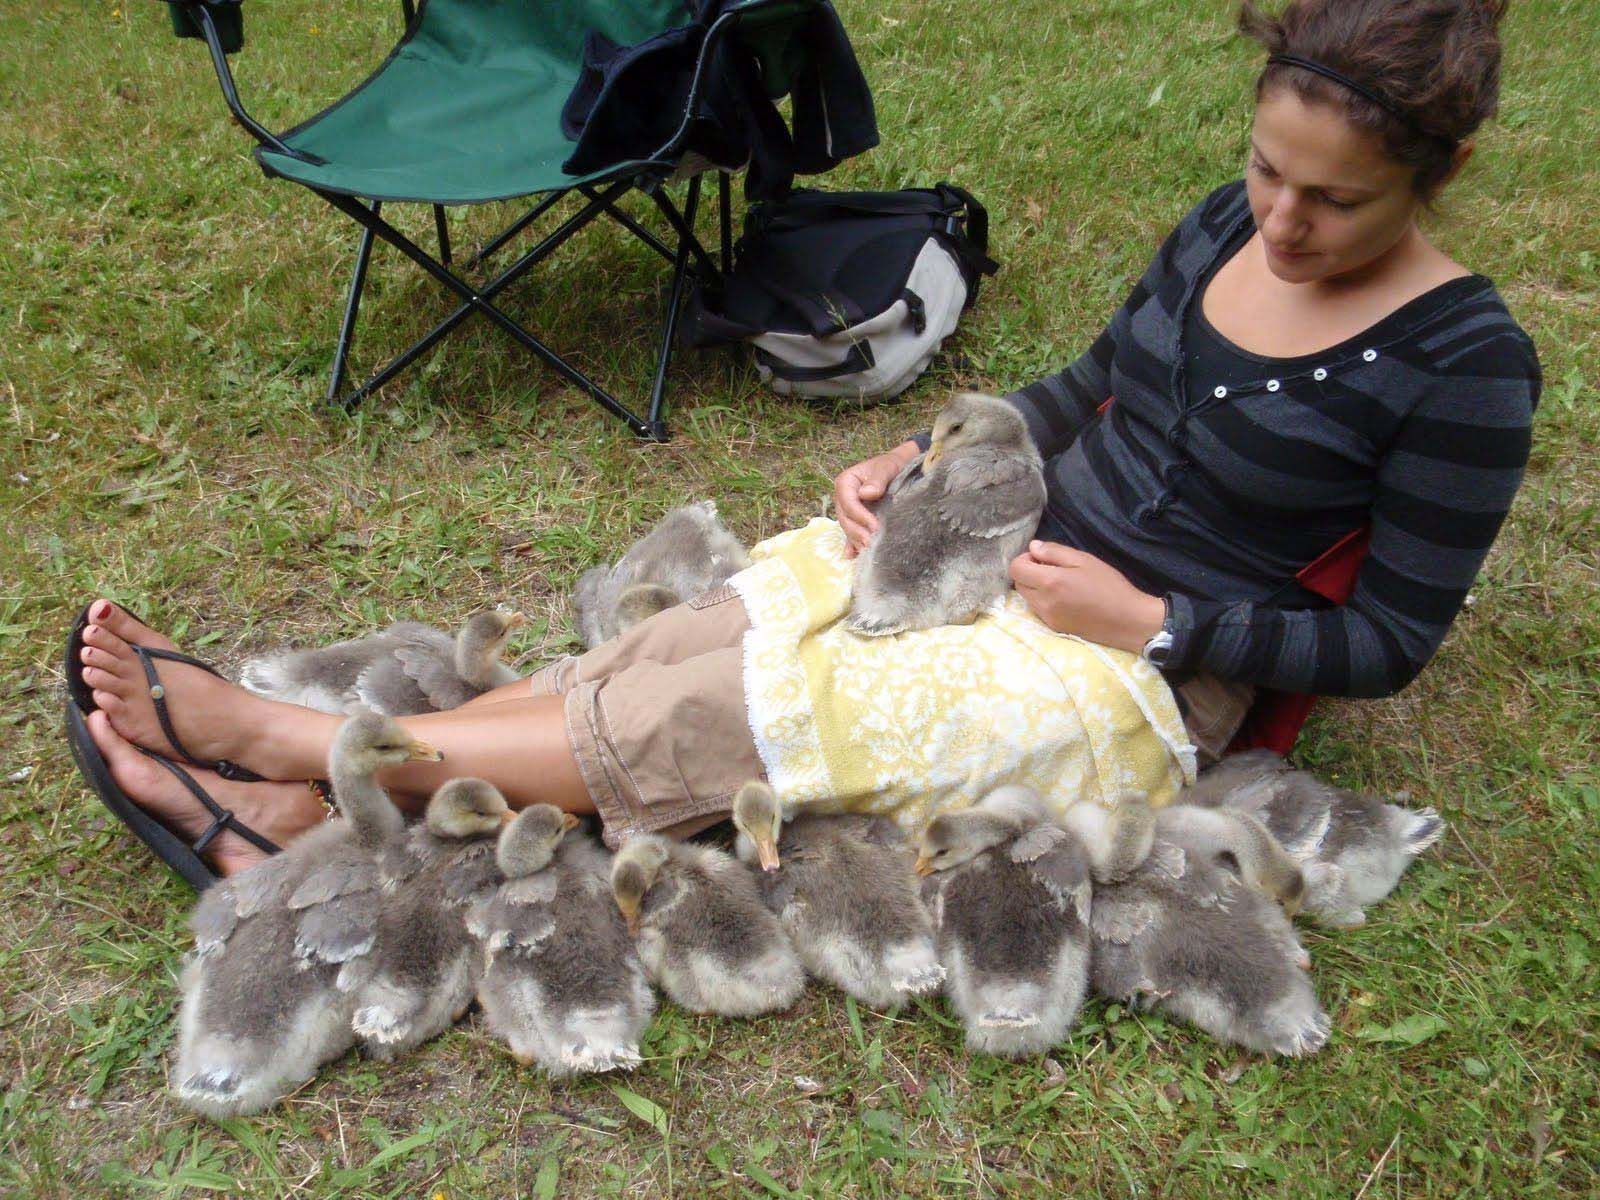 Meir is surrounded by all 12 of her imprinted gosslings.